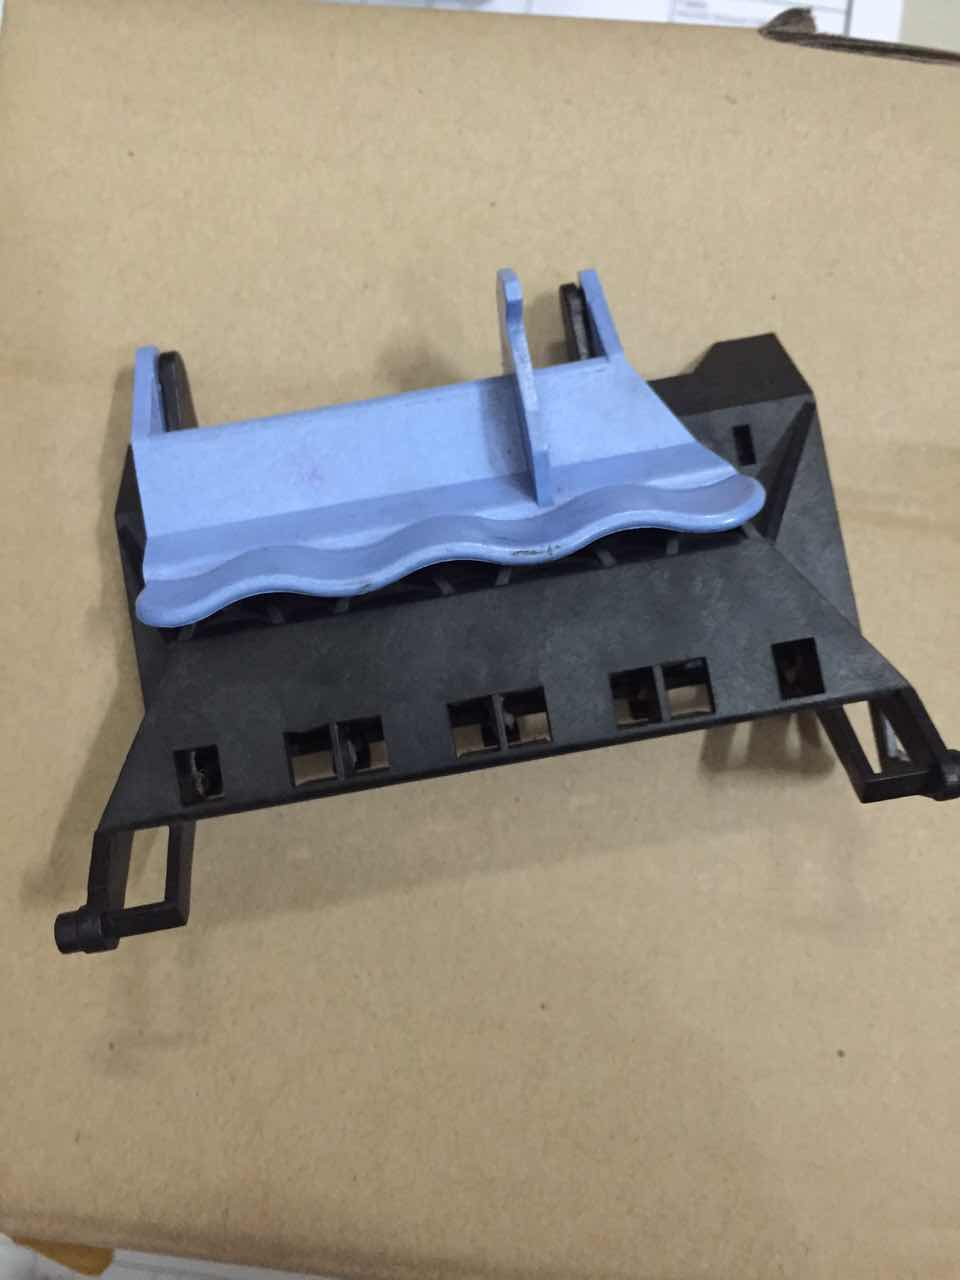 Carriage-Cover(Black + Blue) for HP DesignJet 500 510 800 C7769 C7779 PRINTER ink cartridges carriage station for hp 500 510 800 c7779 c7769 printer without detective board and blue cover